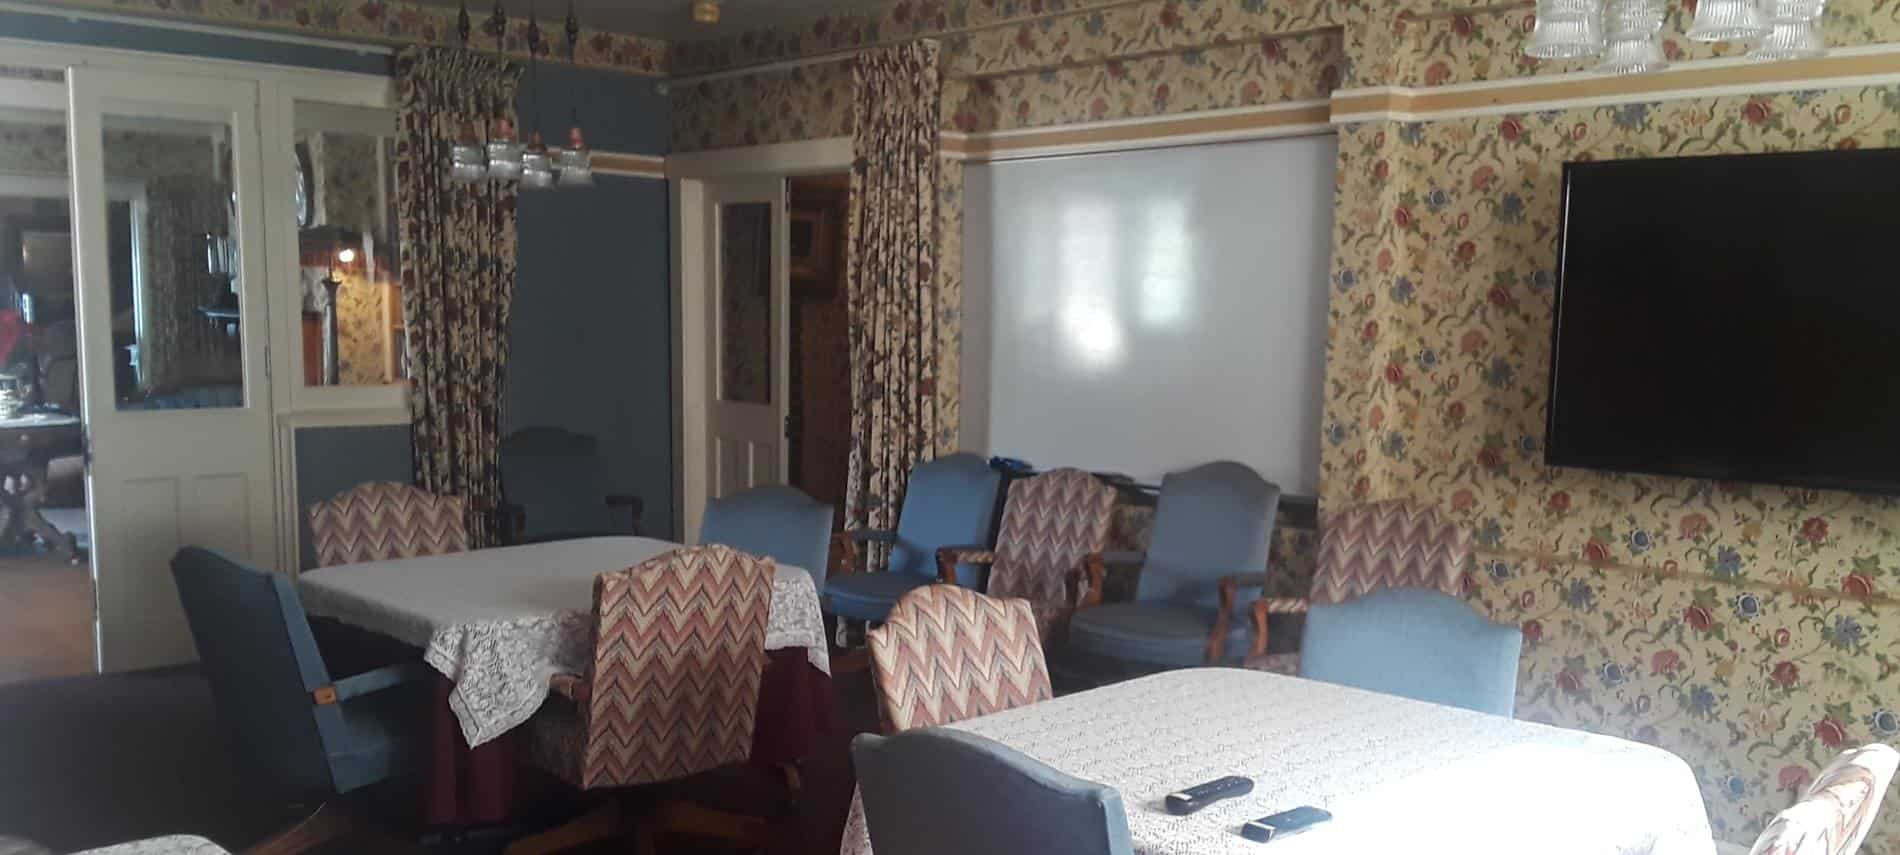 Meeting room with floral papered walls, sliding glass doors, tables for four and extra side chairs